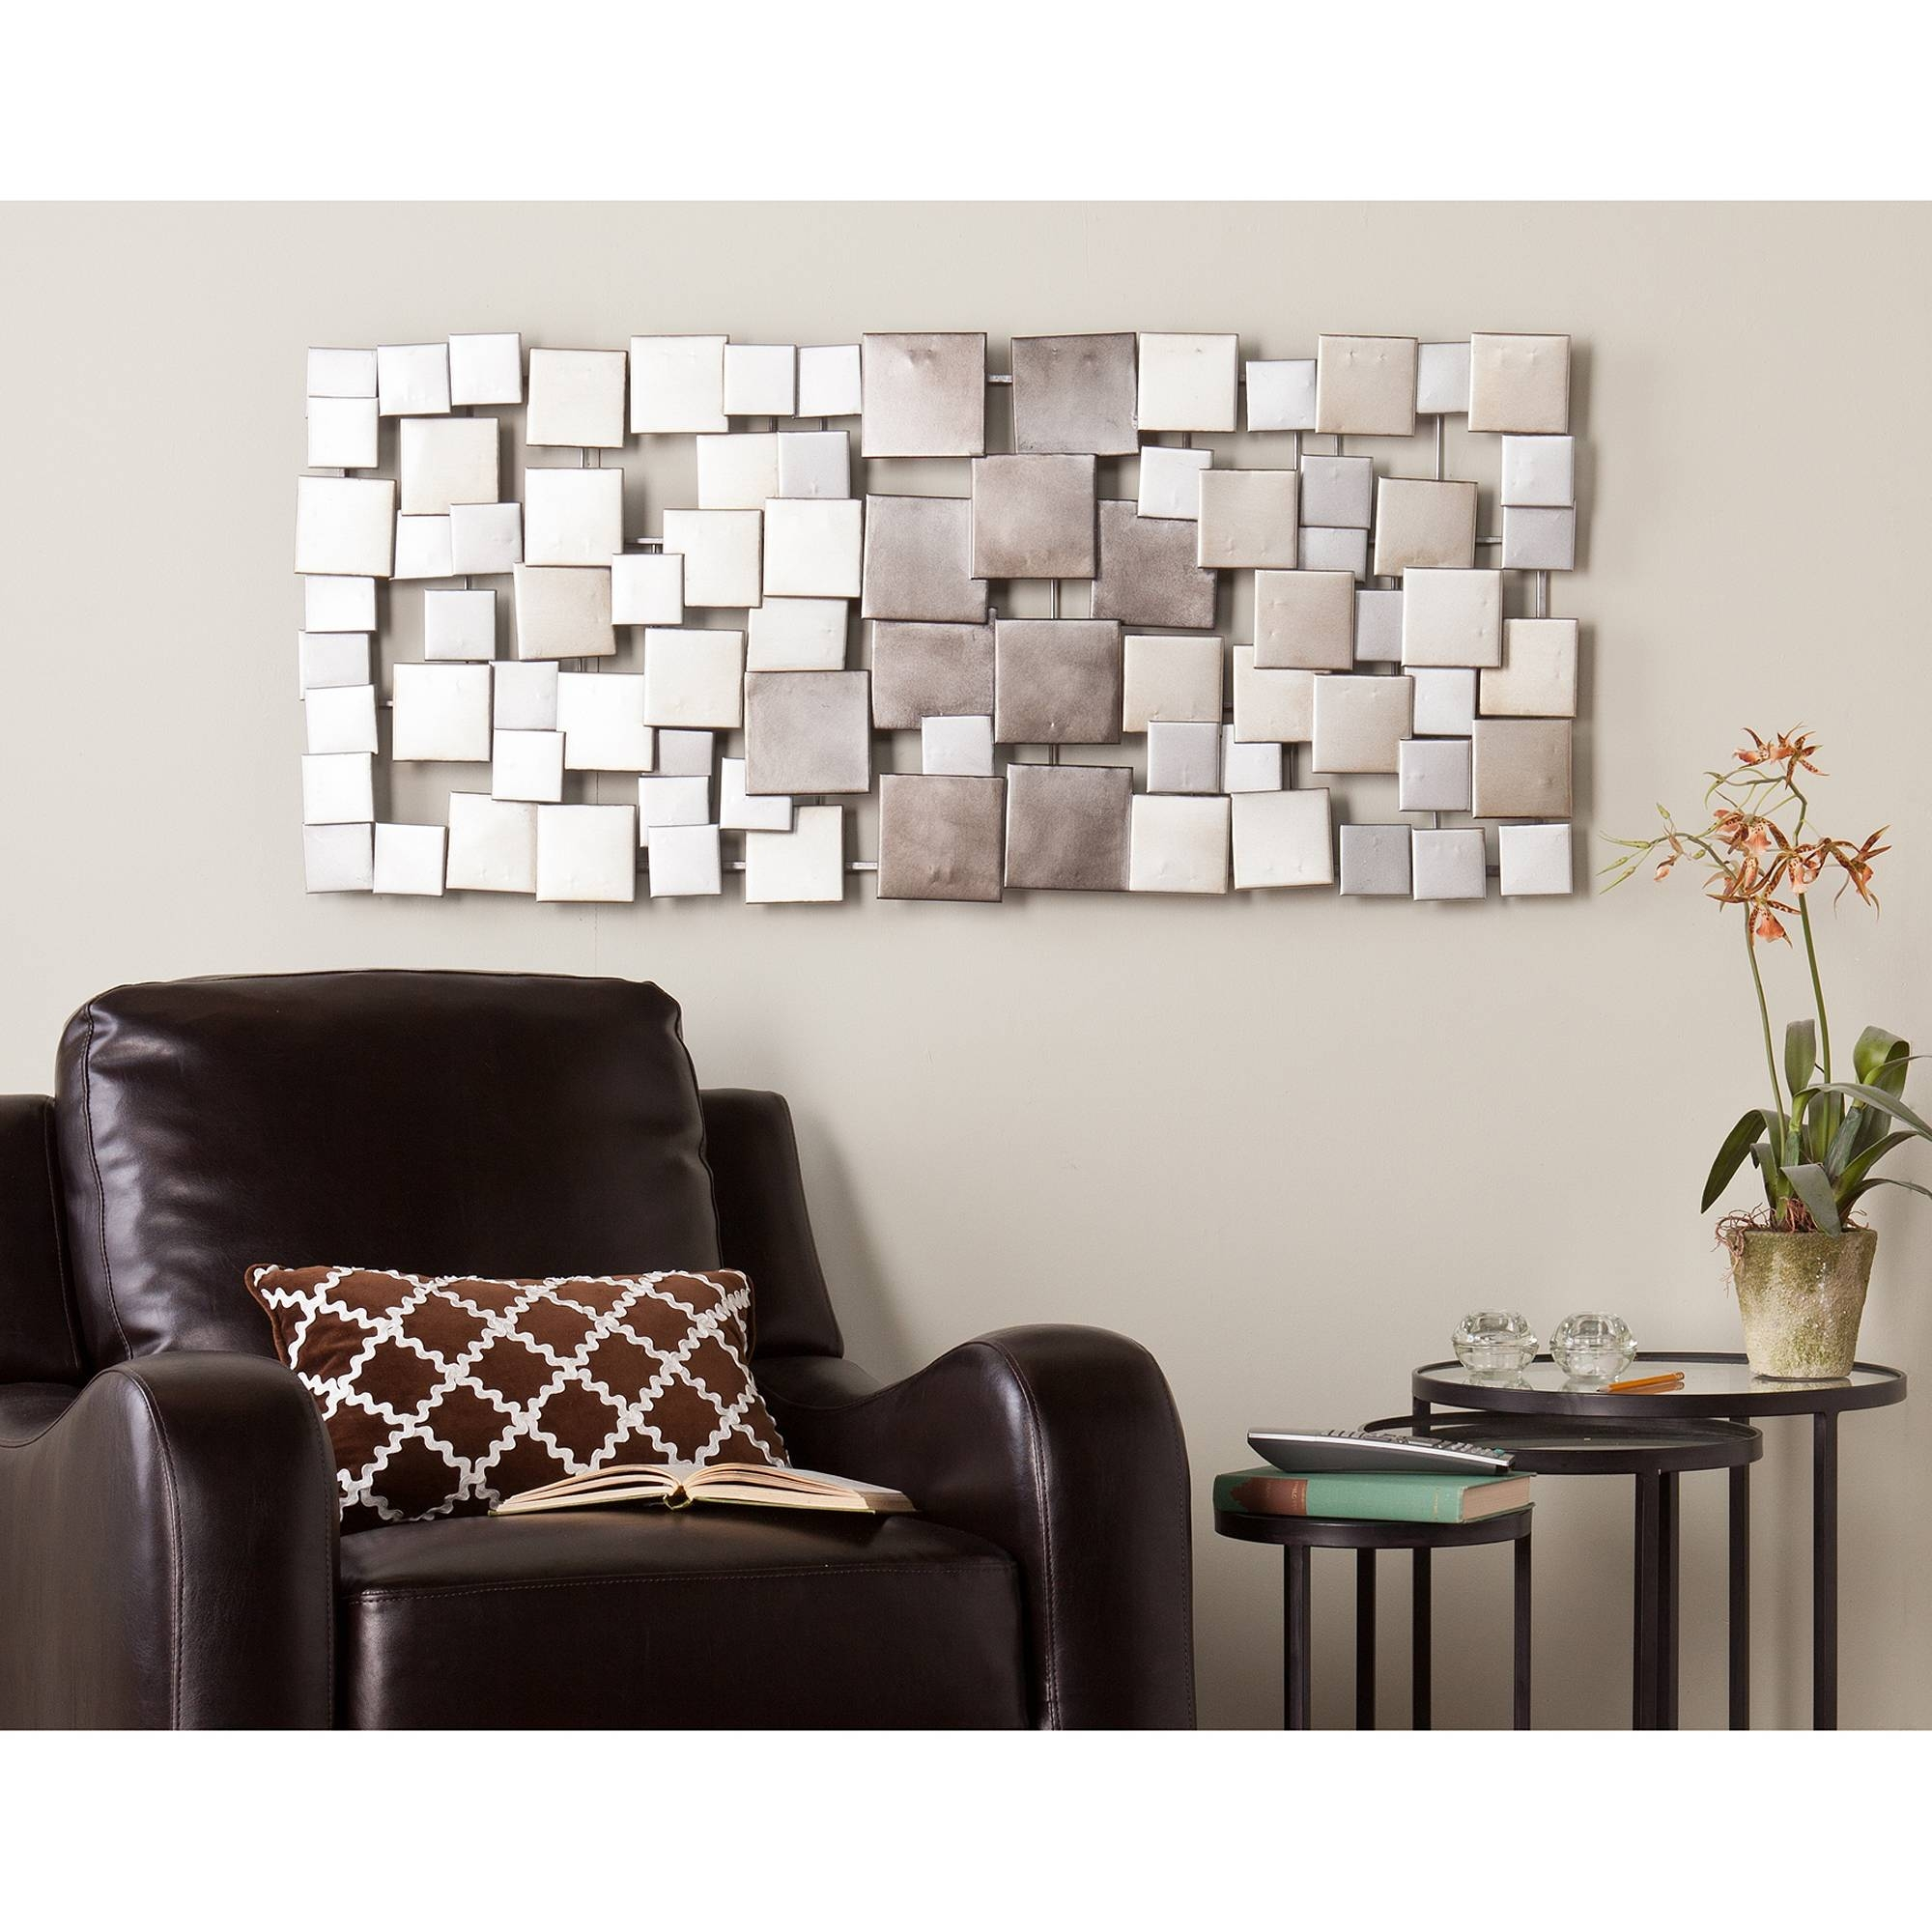 Metal Wall Art – Walmart Regarding Most Up To Date Walmart Framed Art (View 11 of 20)